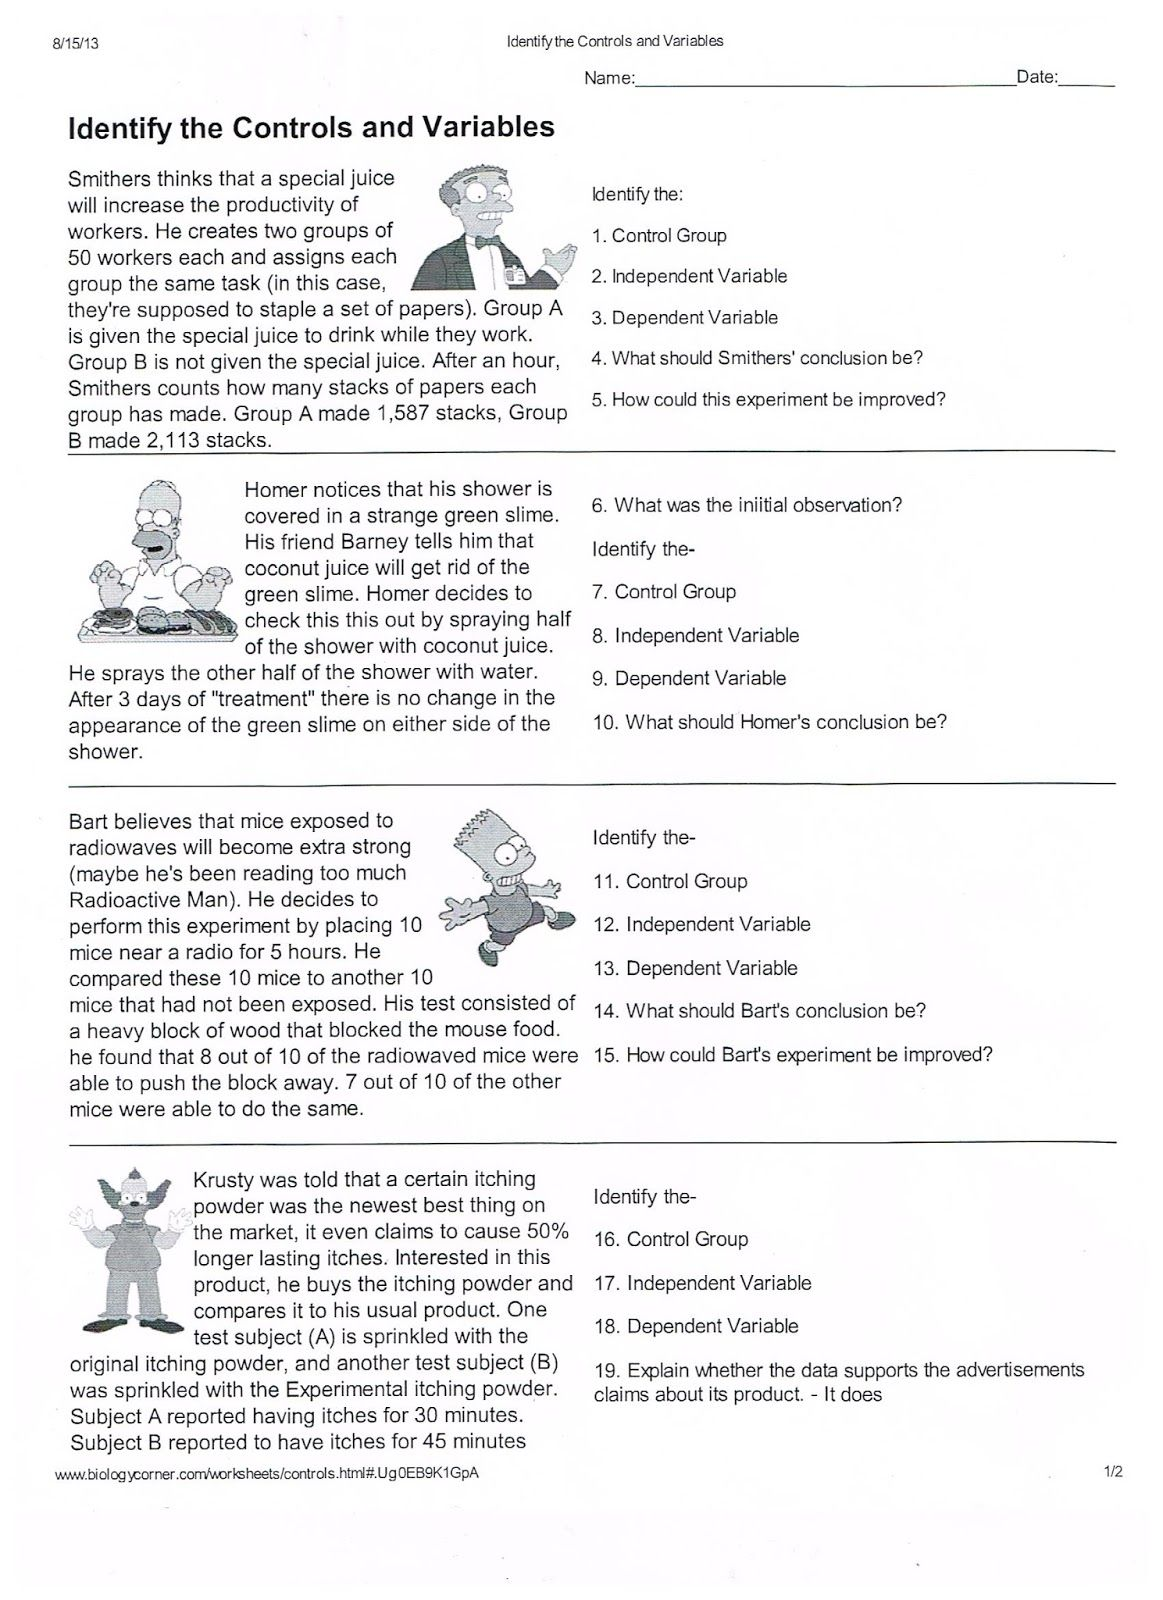 The scientific method grade reading comprehension worksheet